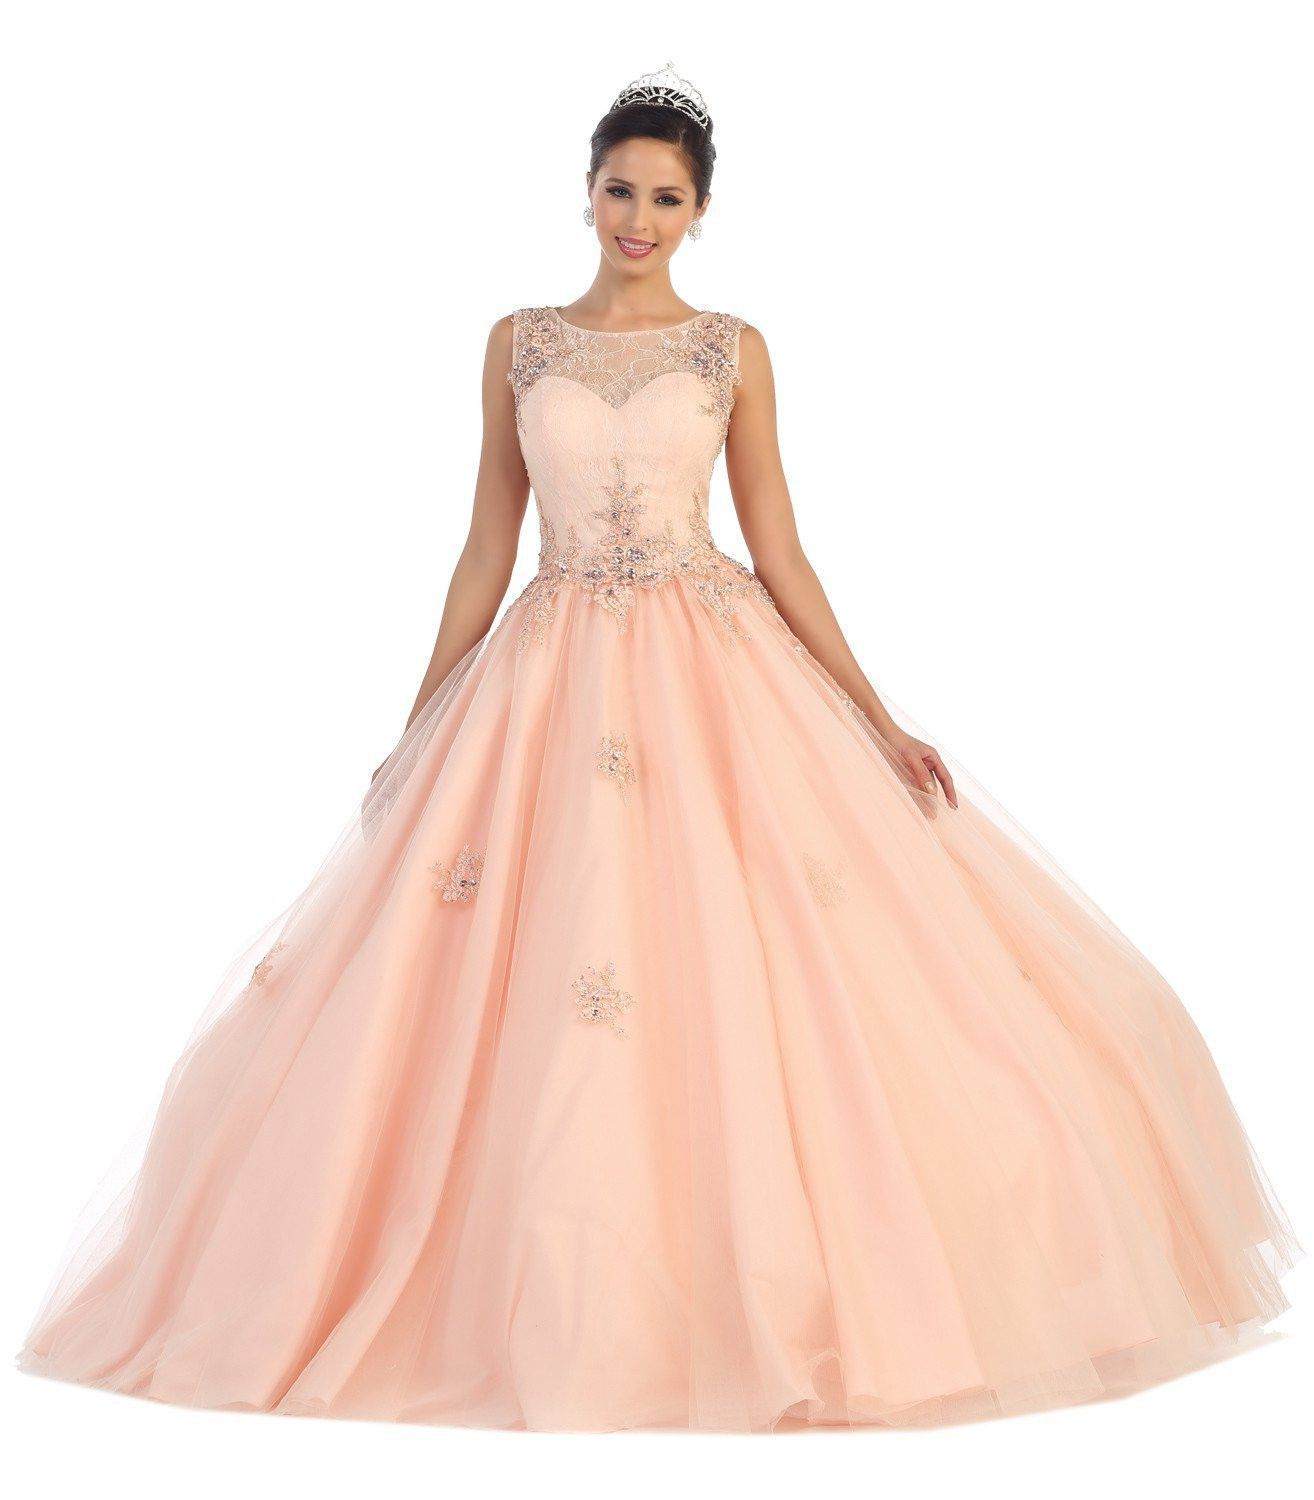 Thedressoutlet quinceanera long dresses sweet prom gown sweet